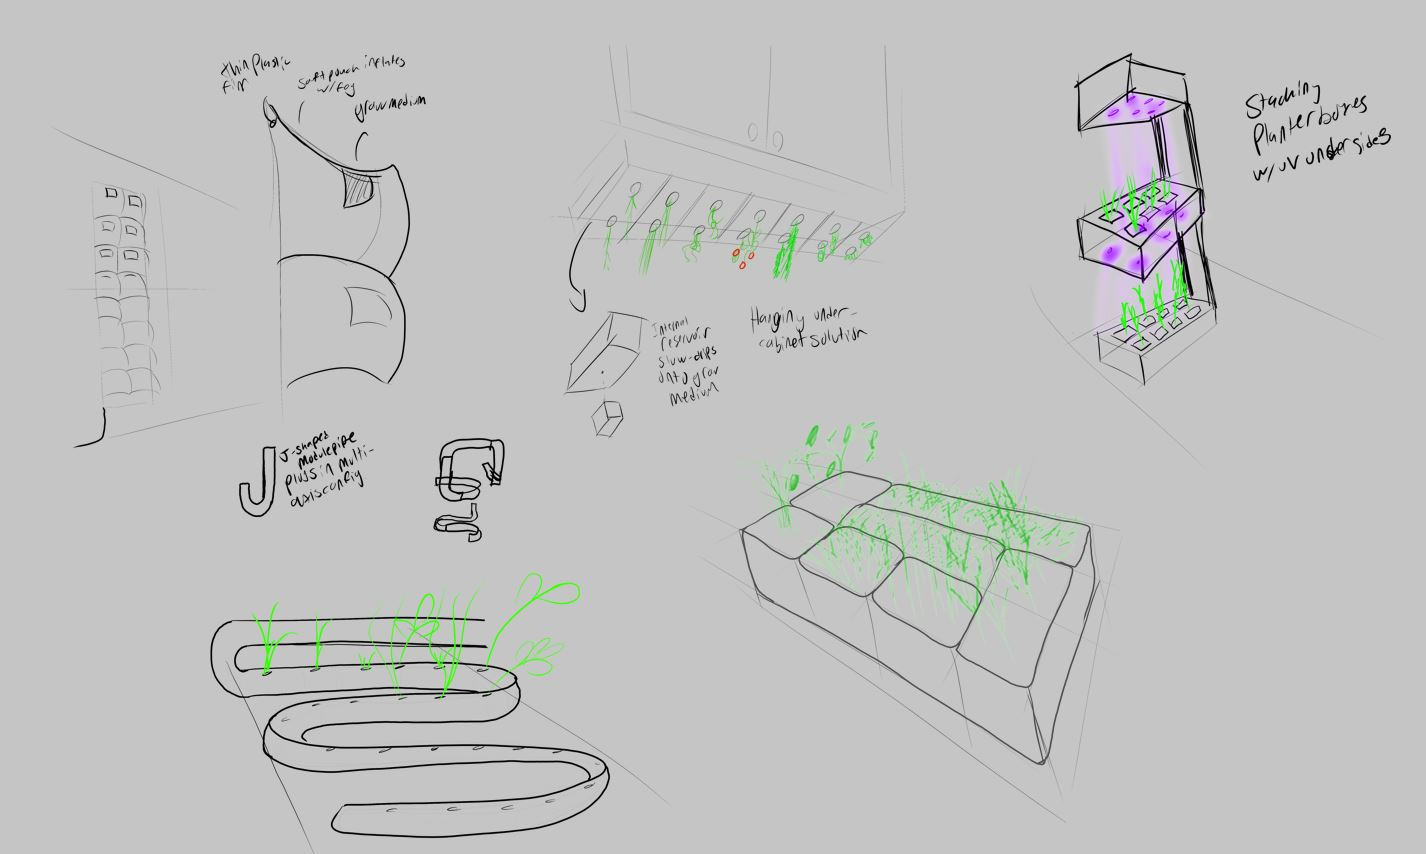 Concept sketches for upgrow